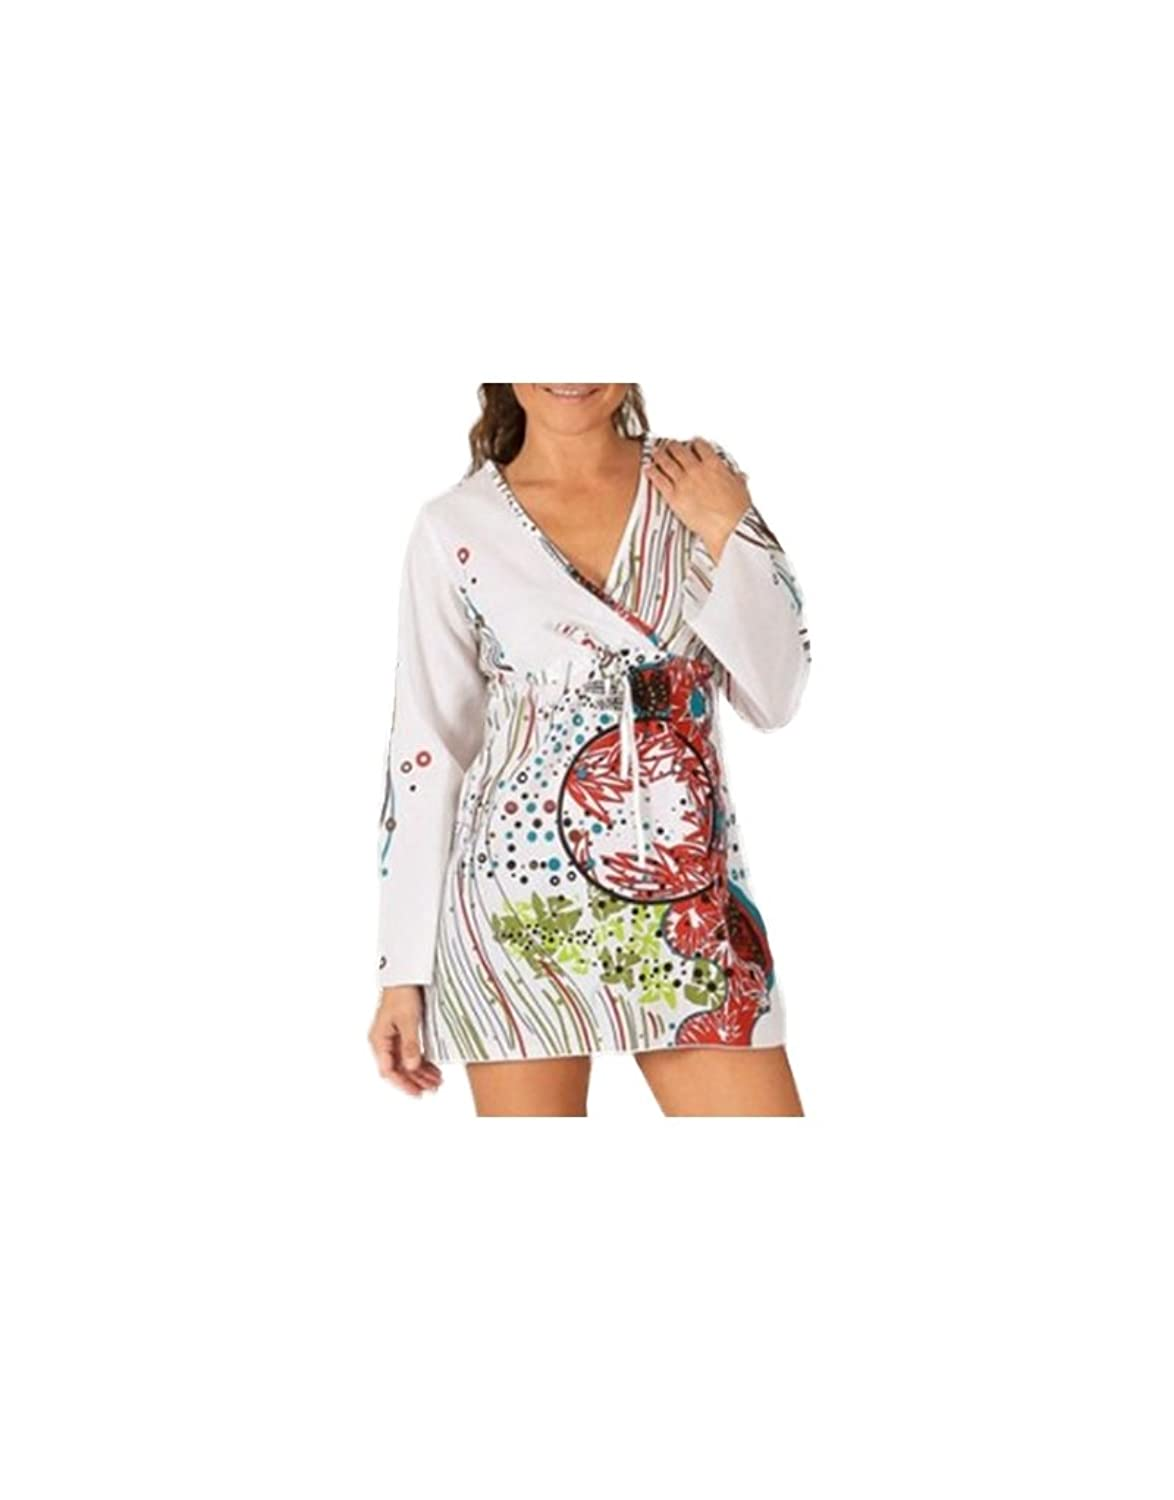 Modeincoton - Tunic in cotton long-sleeved V-neck with attached links Modeincoton TUL091